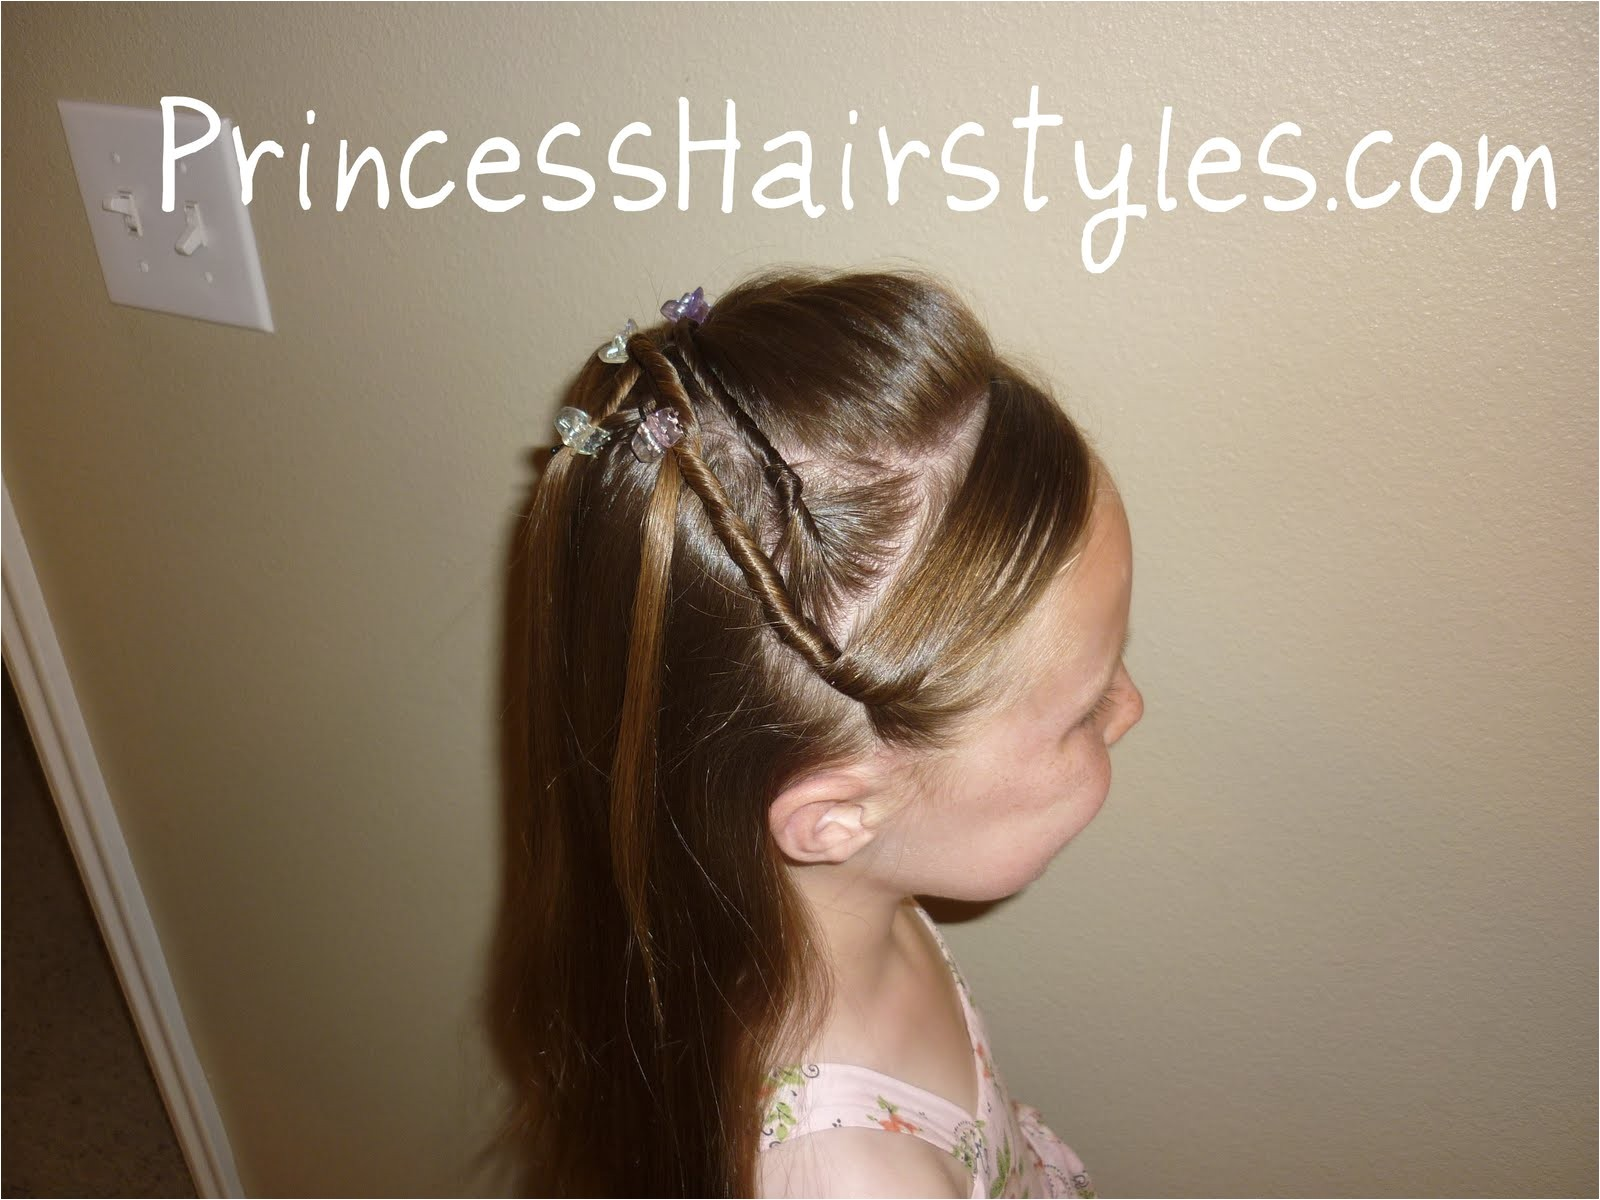 Easy Hairstyles for Tweens Hairstyles for Girls September 2010